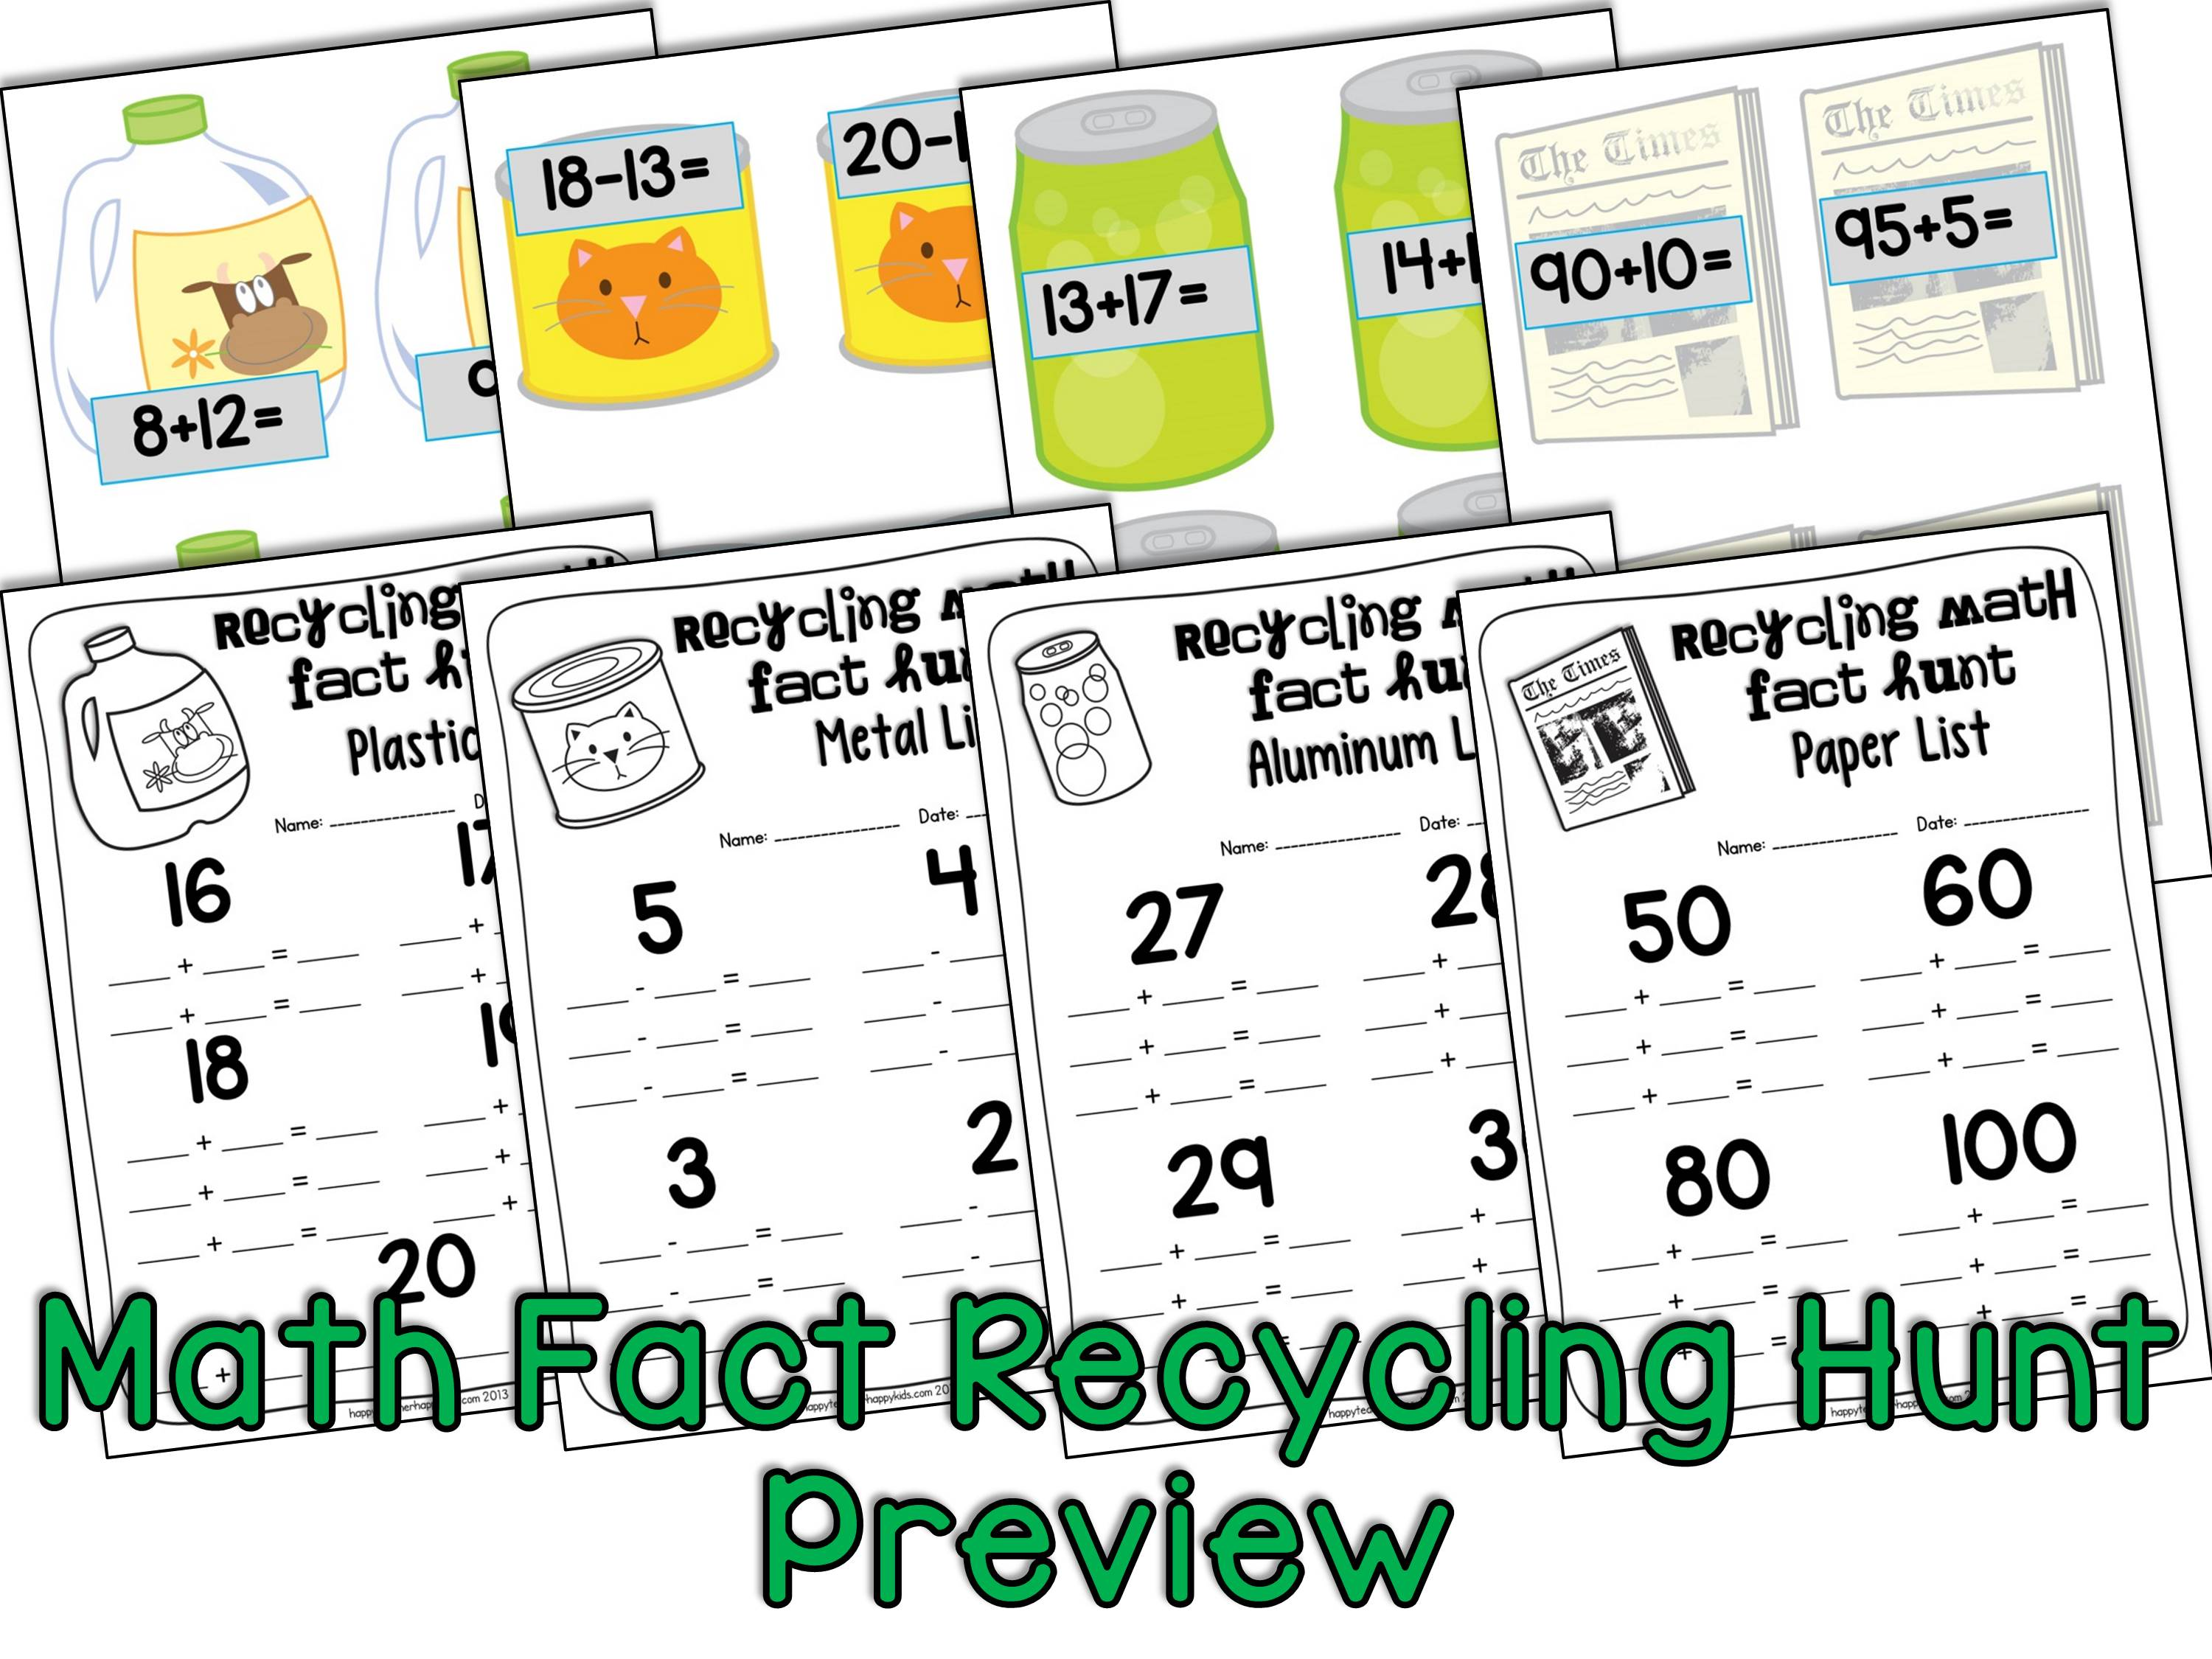 Update Math Fact Recycling Hunt Preview